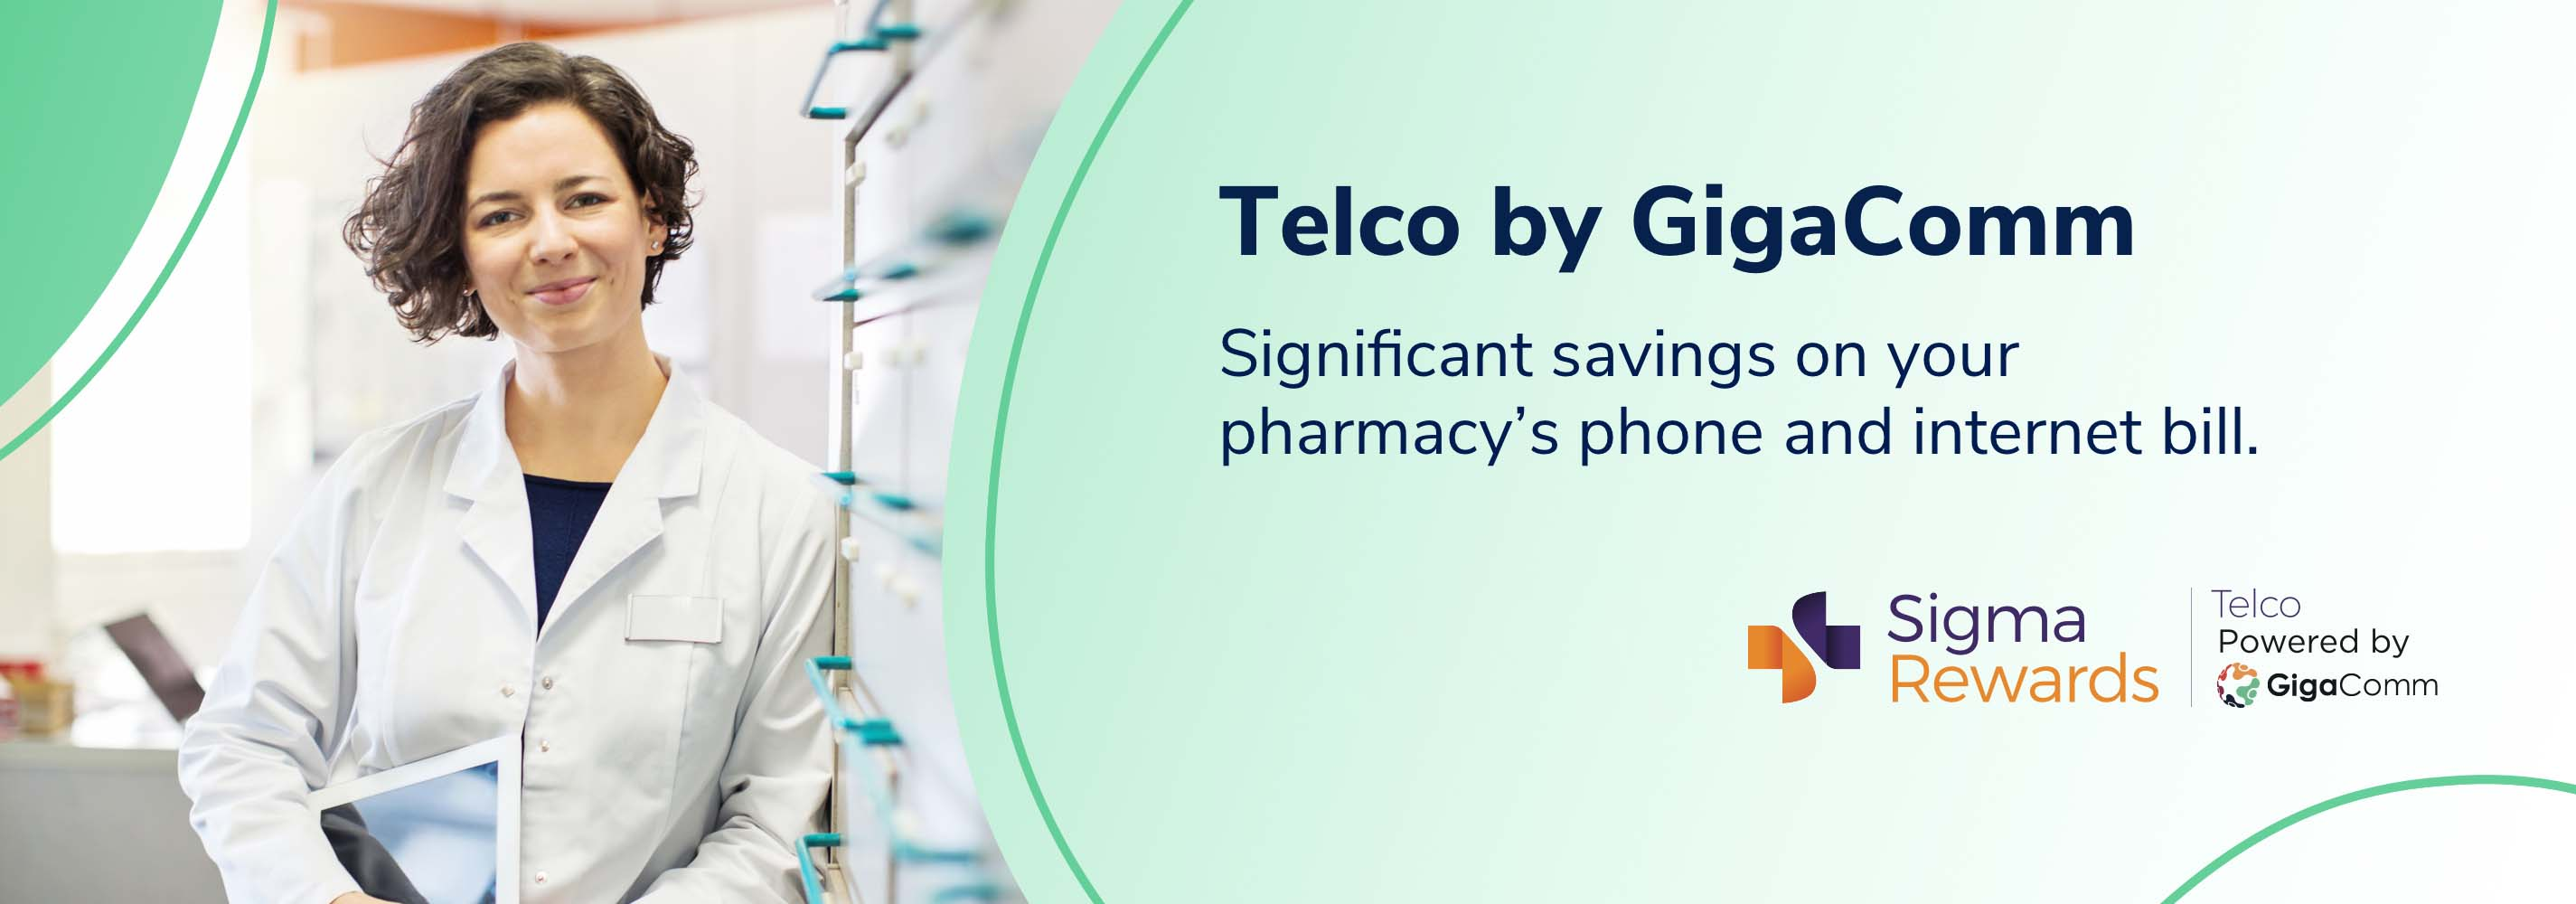 Sigma Rewards Telco By Gigacomm